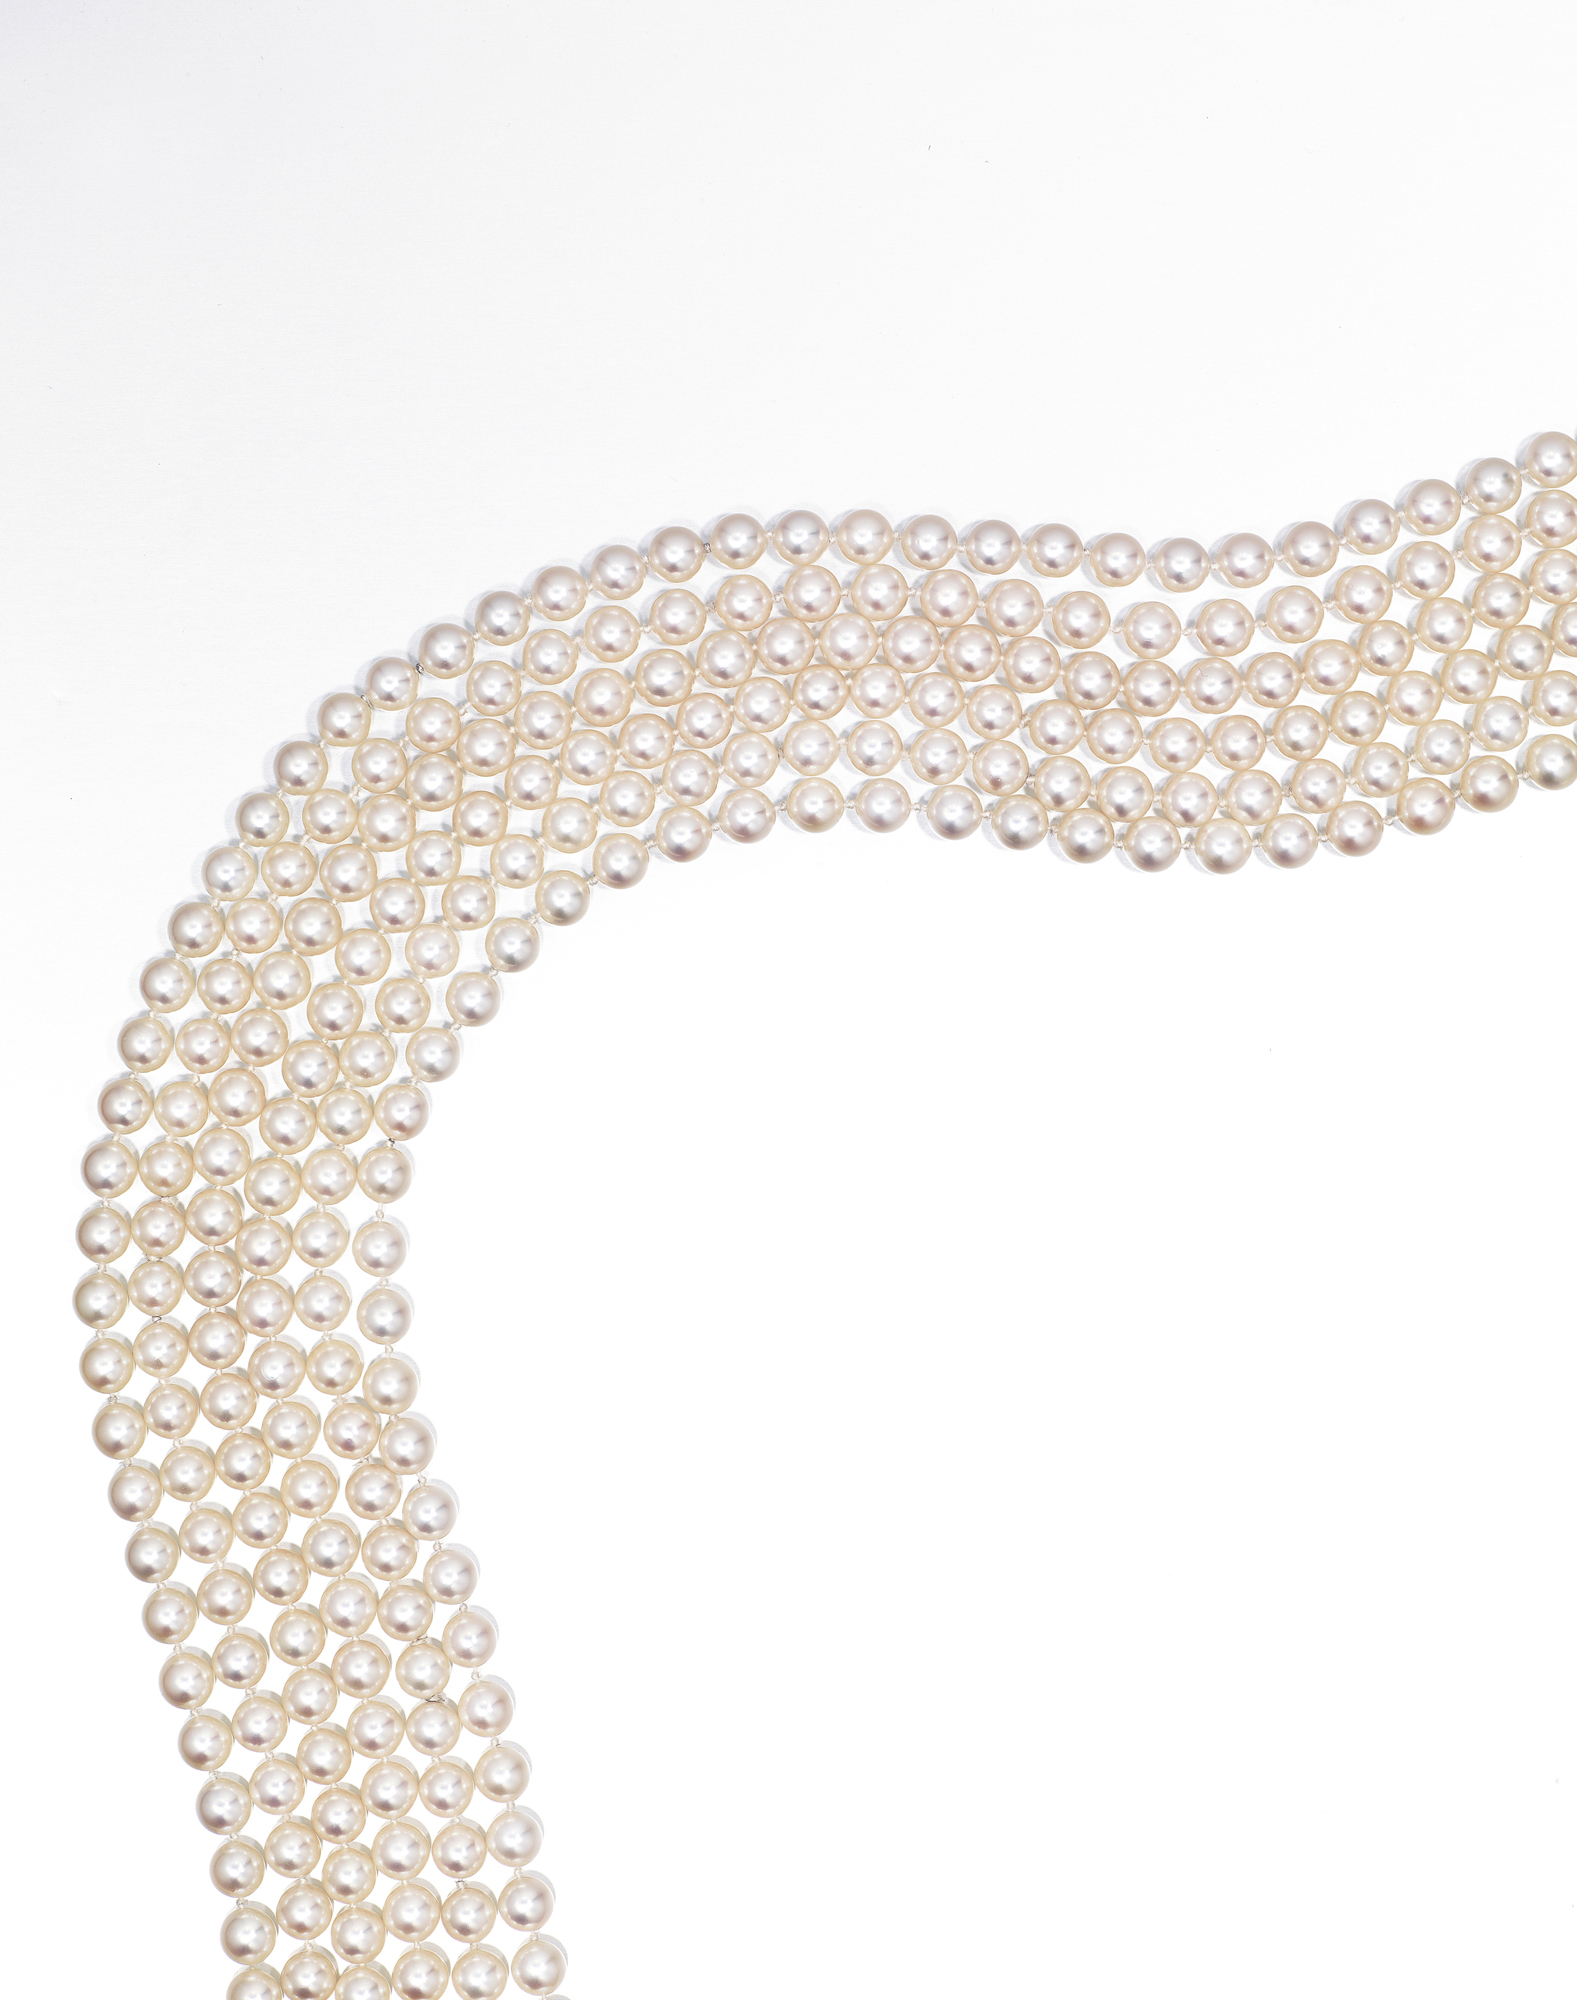 THREE SINGLE-STRAND CULTURED PEARL SAUTOIRS